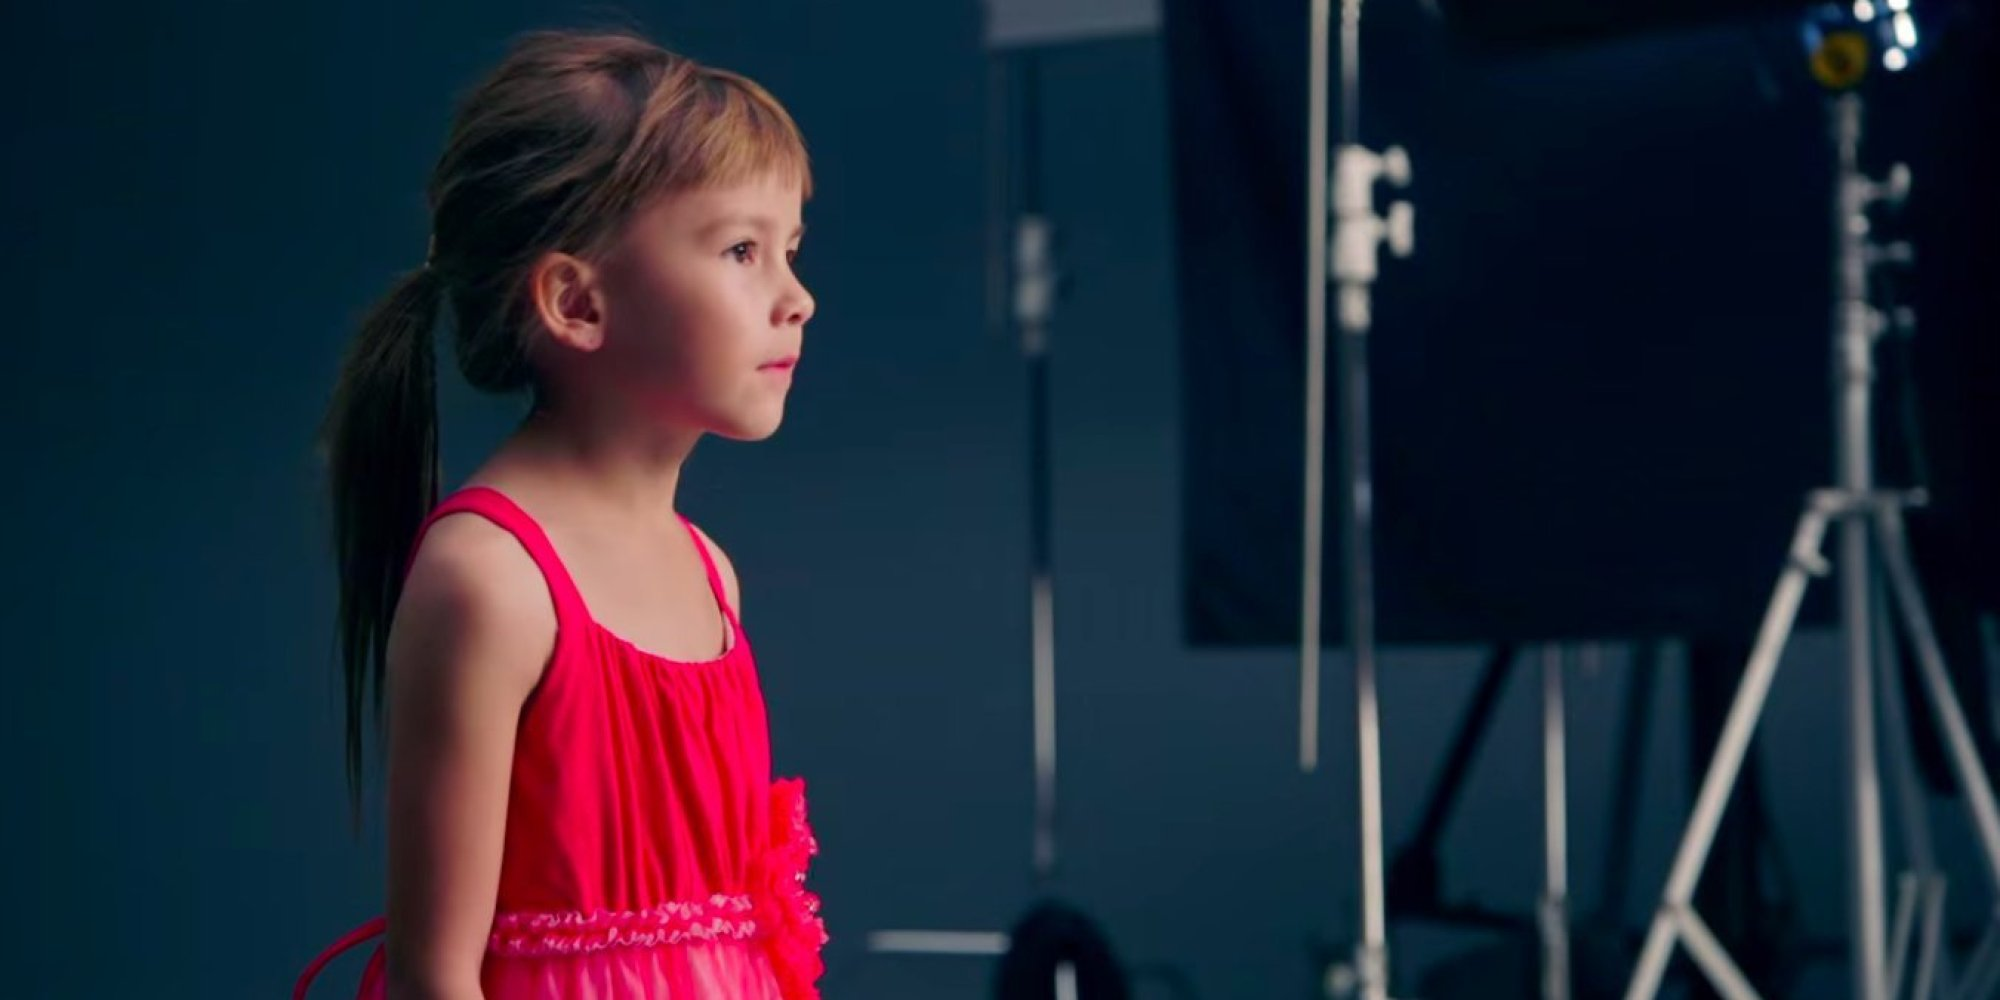 The Reaction To #LikeAGirl Is Exactly Why Its So